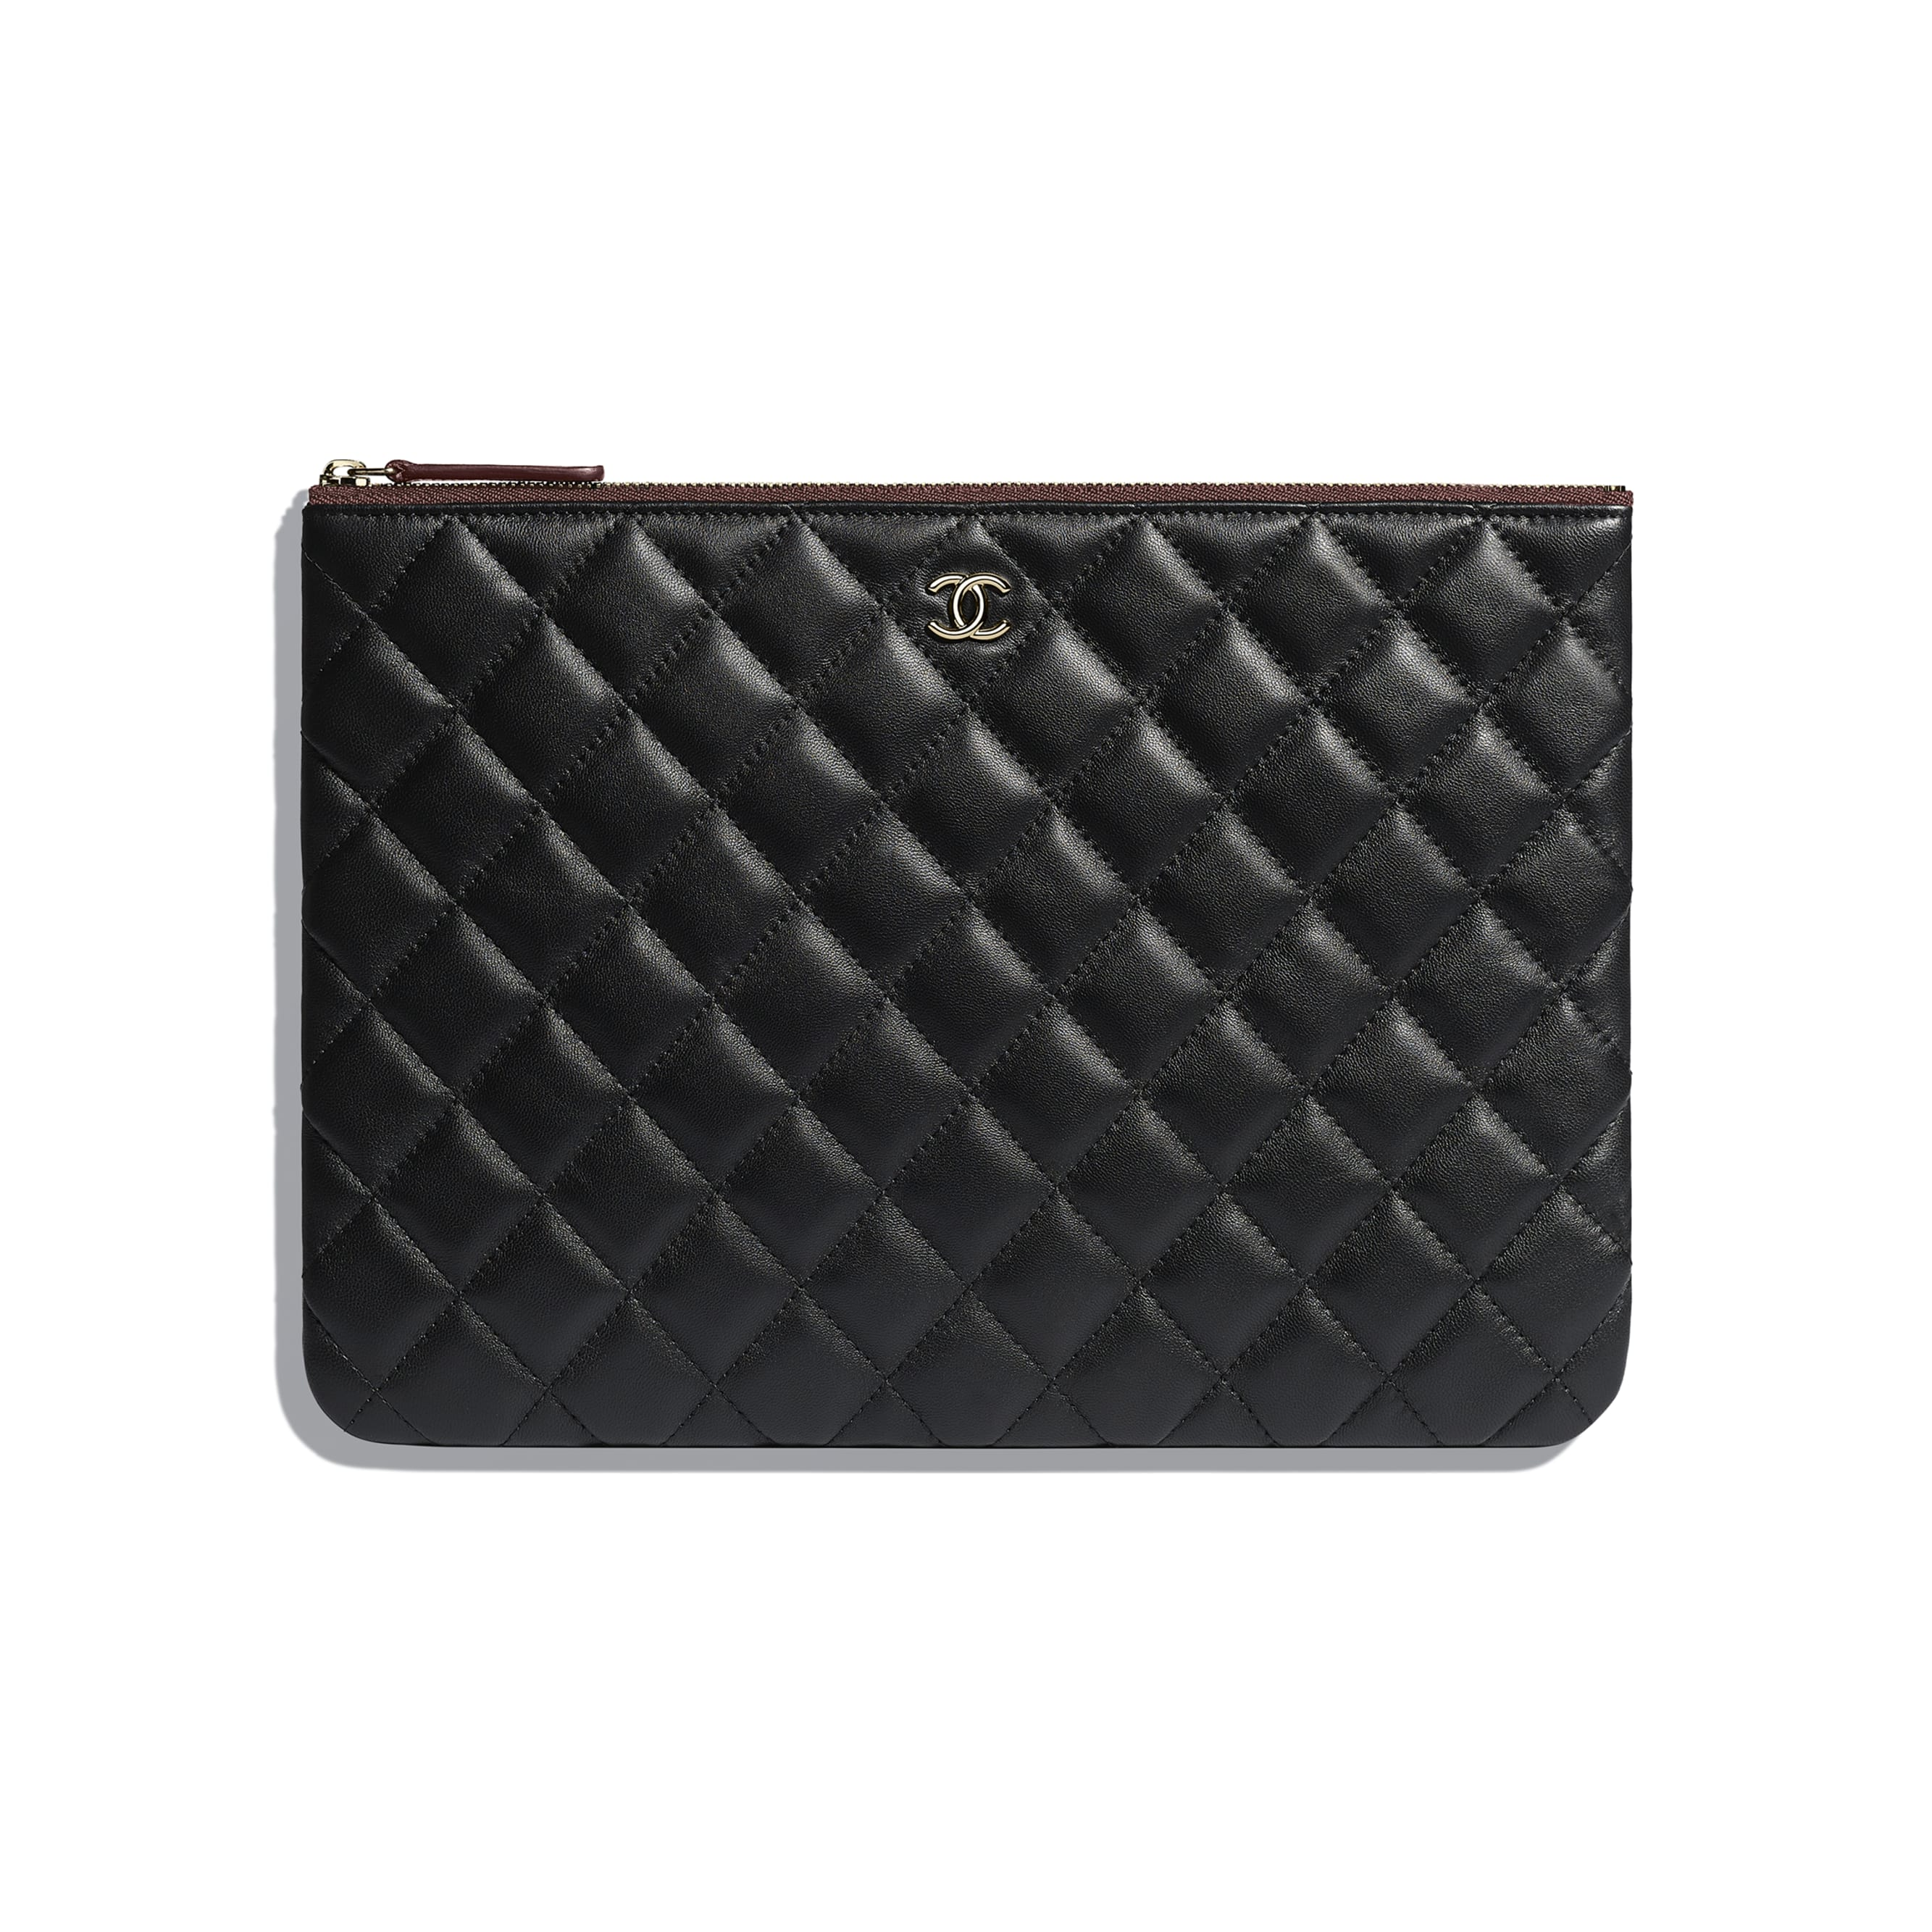 Classic Pouch - Black - Lambskin & Gold-Tone Metal - CHANEL - Default view - see standard sized version